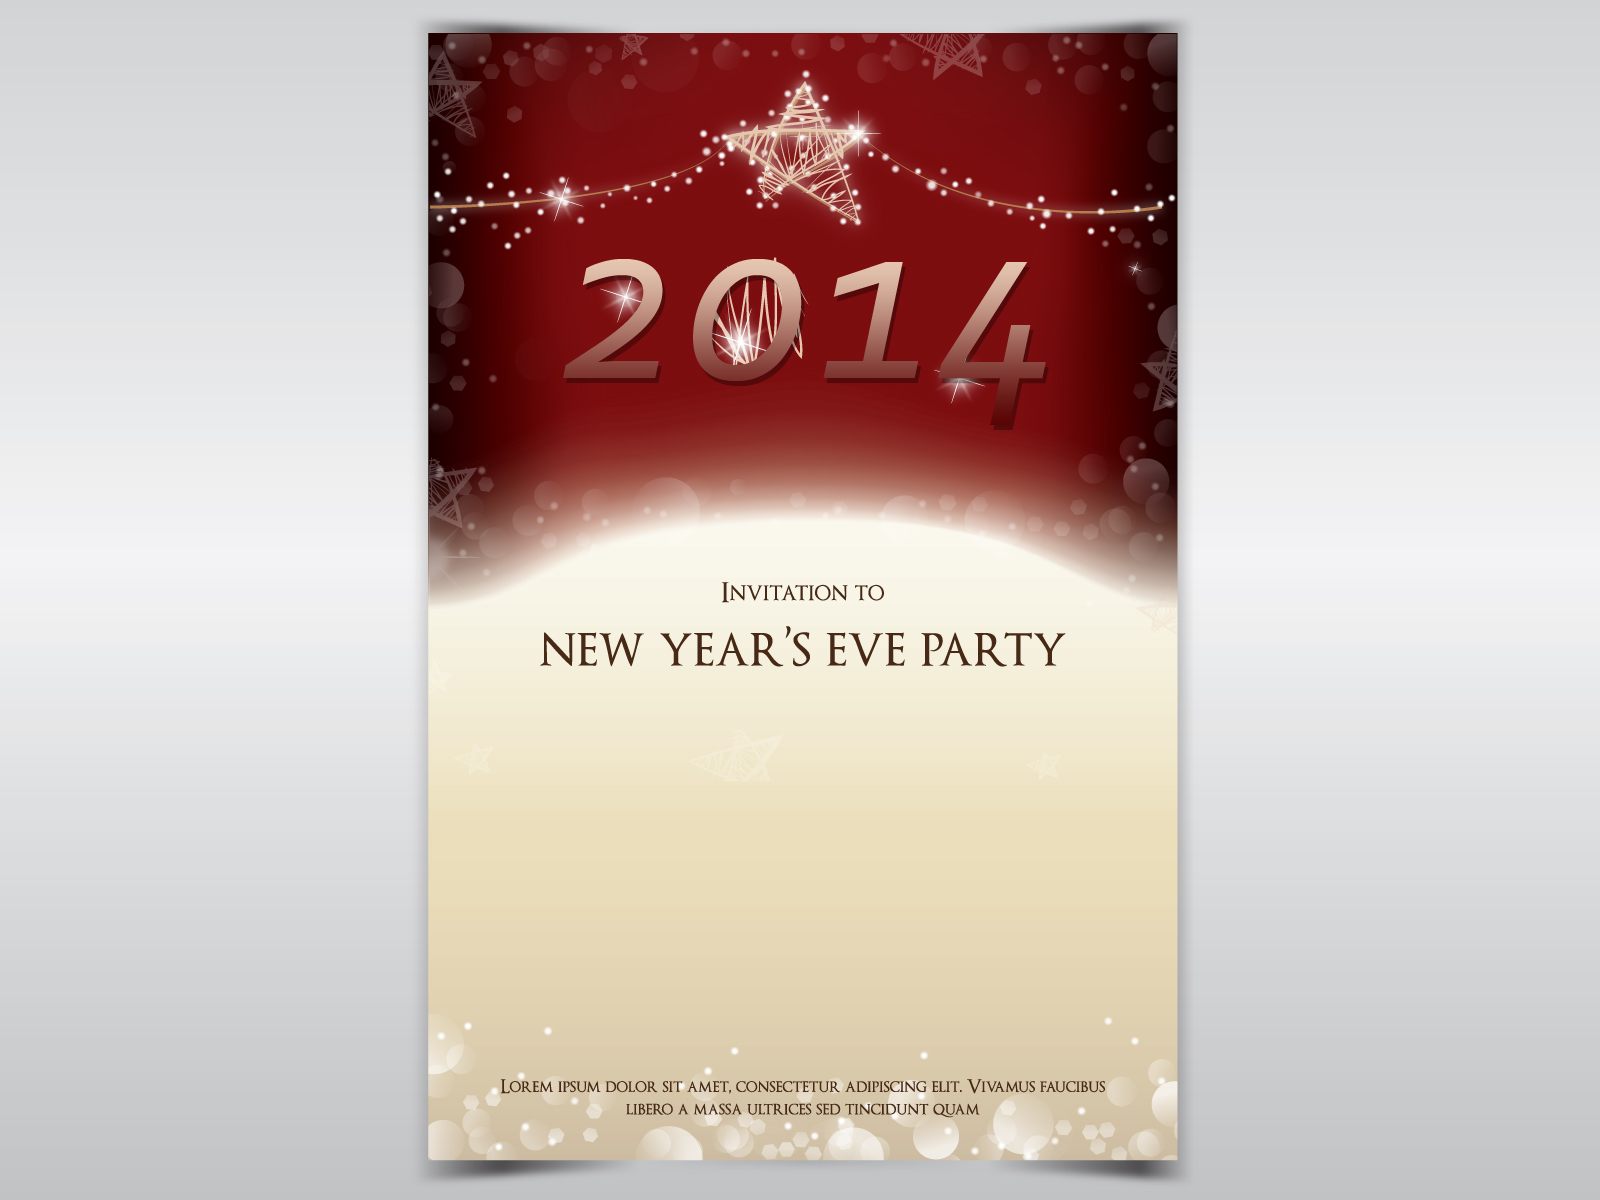 New Year Party Invitation Backgrounds